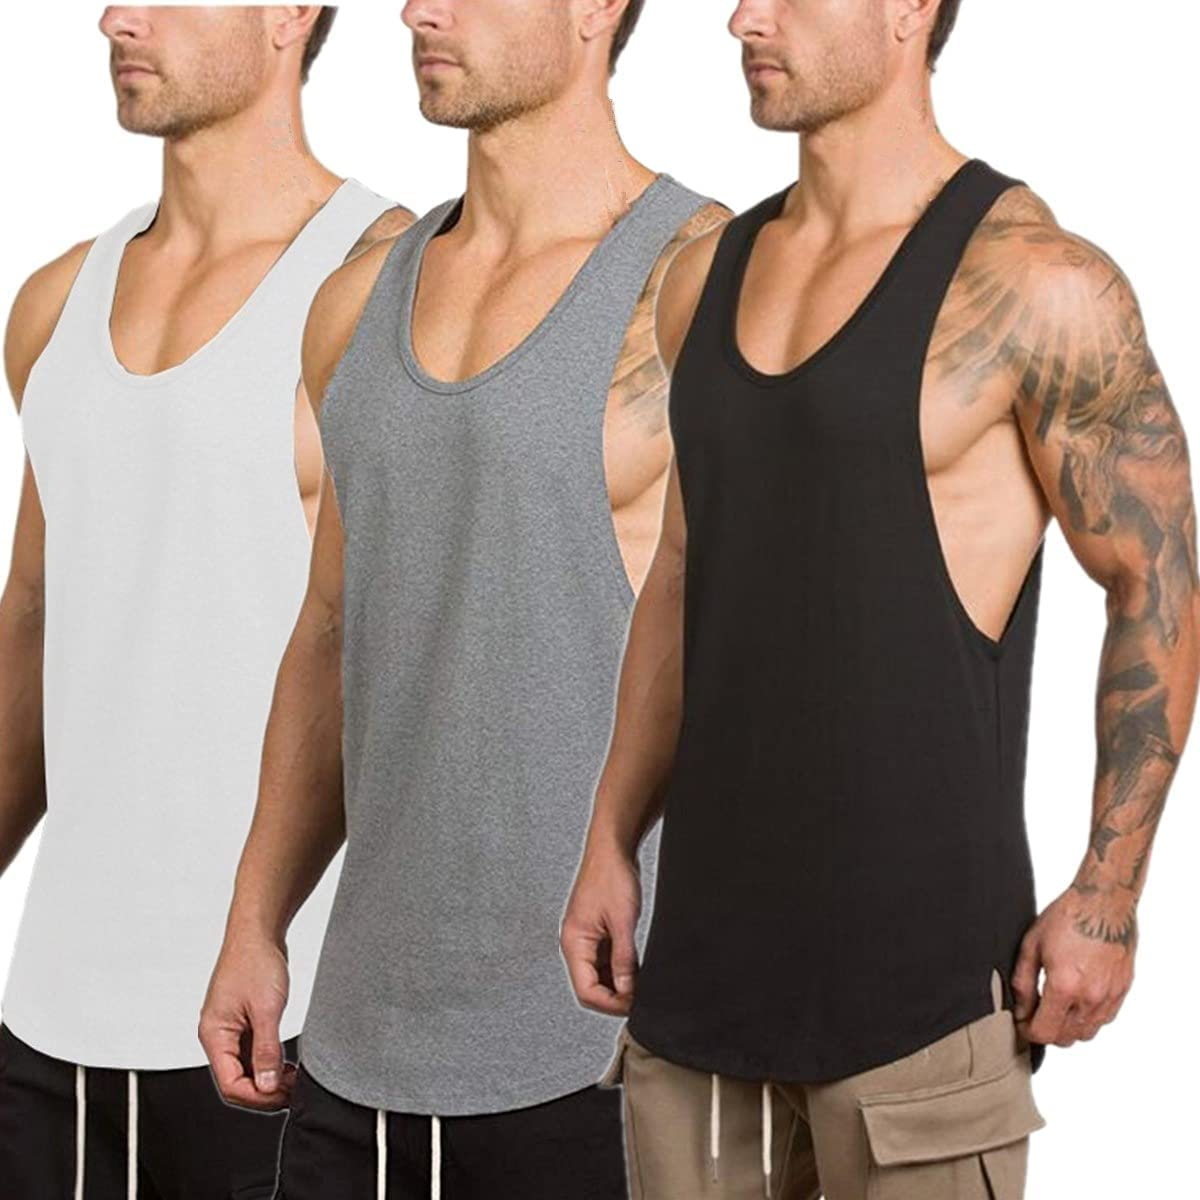 XYKJFIT Men's 3 Bargain Pack Light Weight Gym Te Workout Top Muscle Tank Manufacturer regenerated product